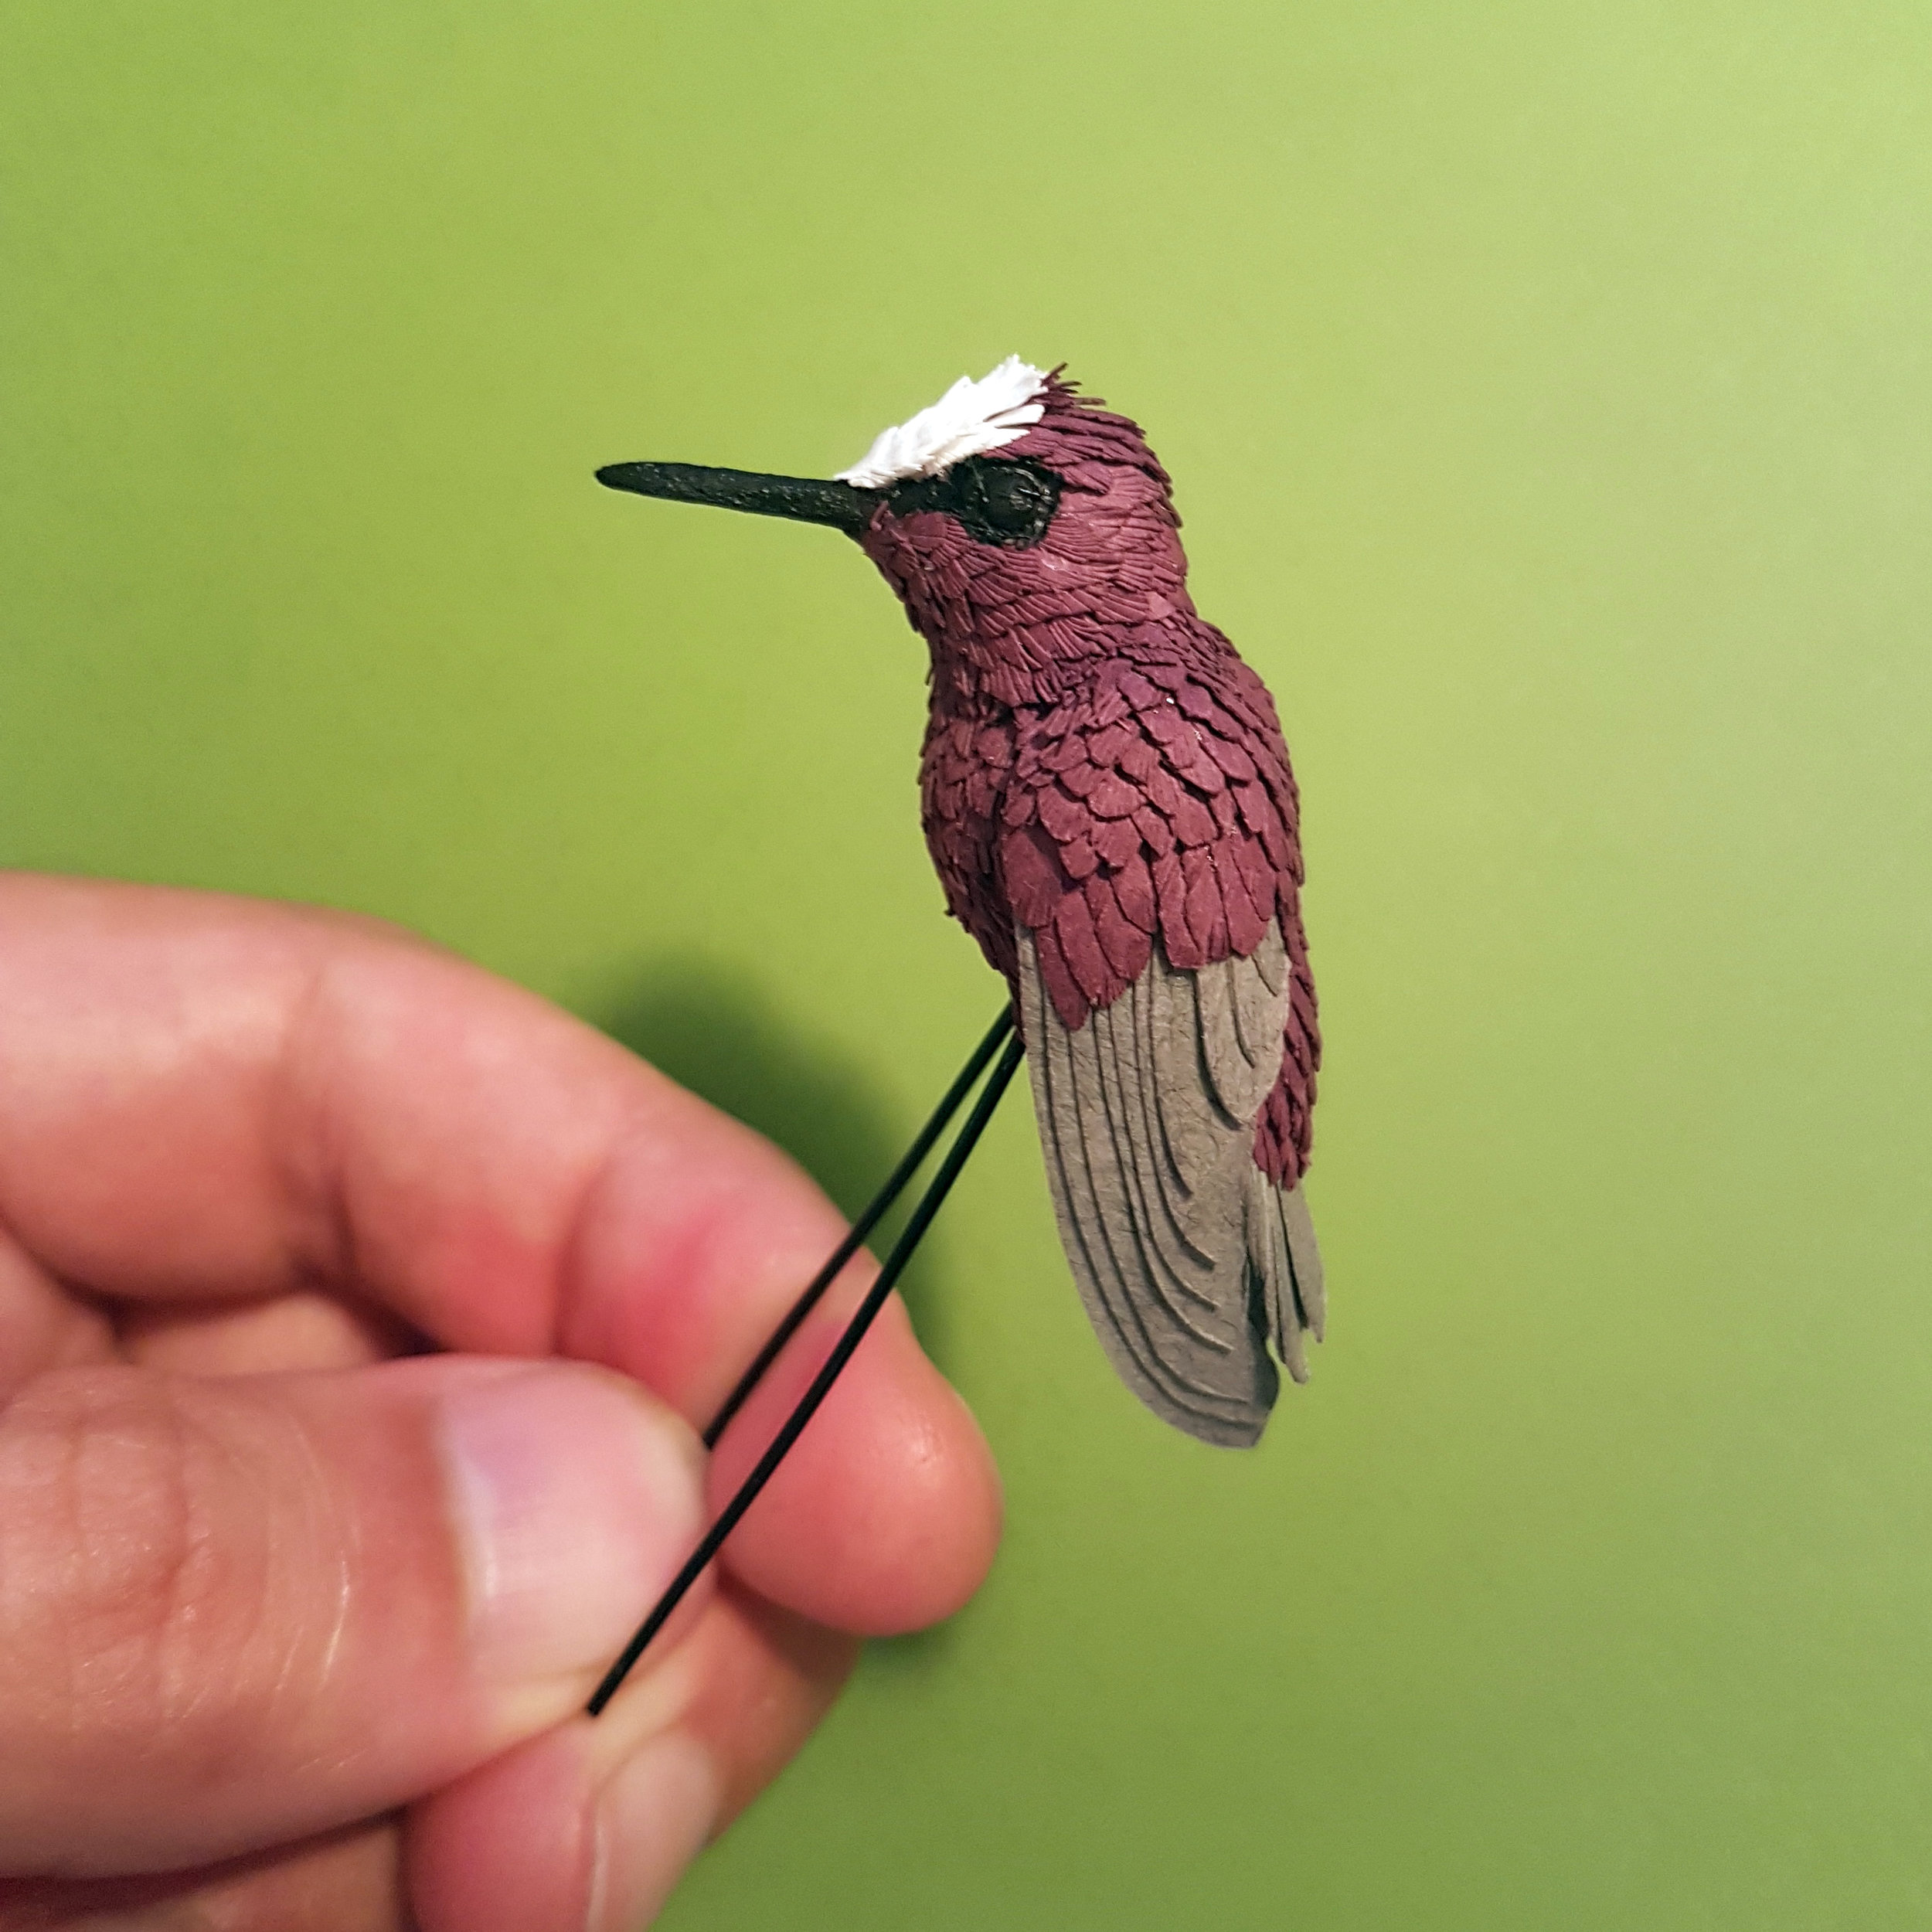 One of the smallest species of hummingbird is this one, The Snow capped.